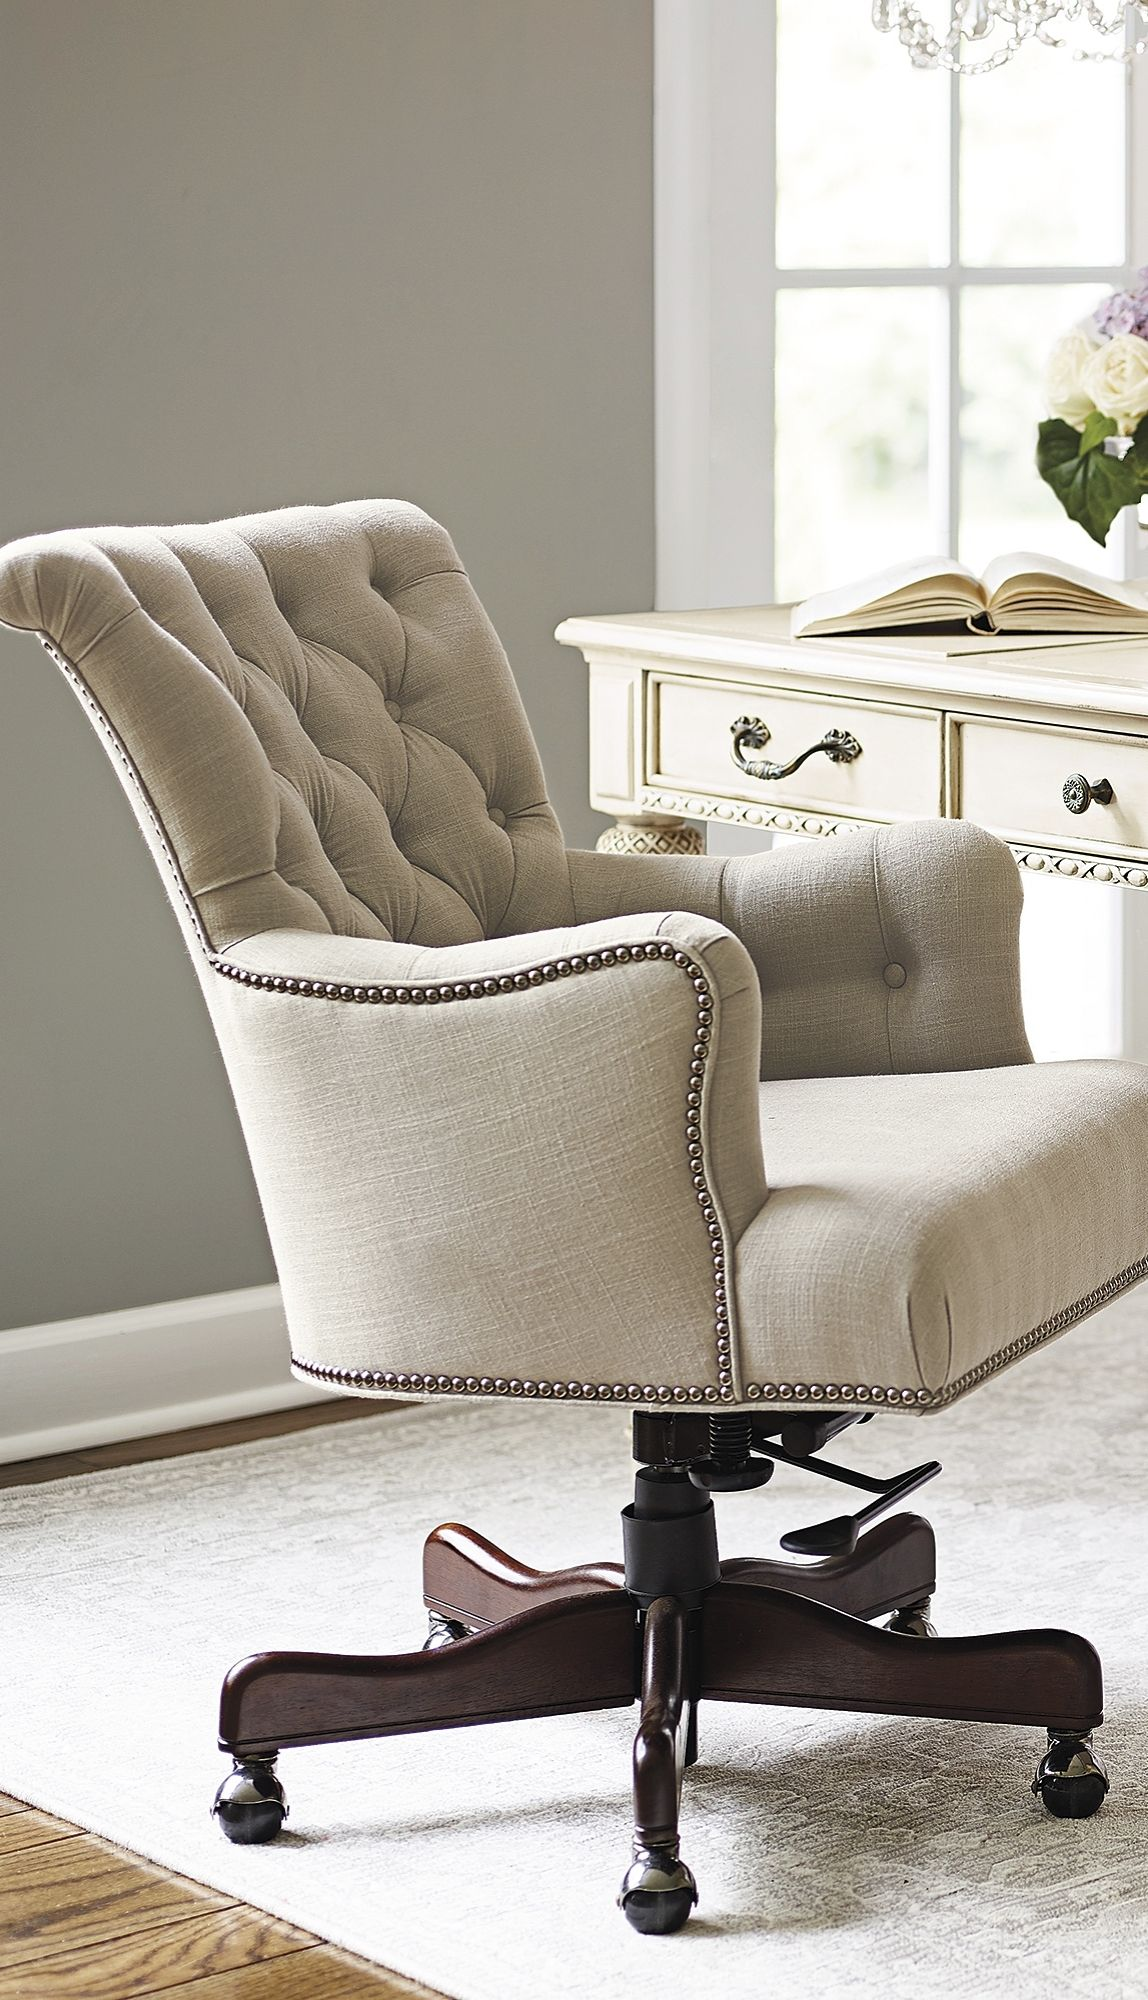 medium resolution of button tufted linen accented with silver nailhead trim defines the elegant averly desk chair